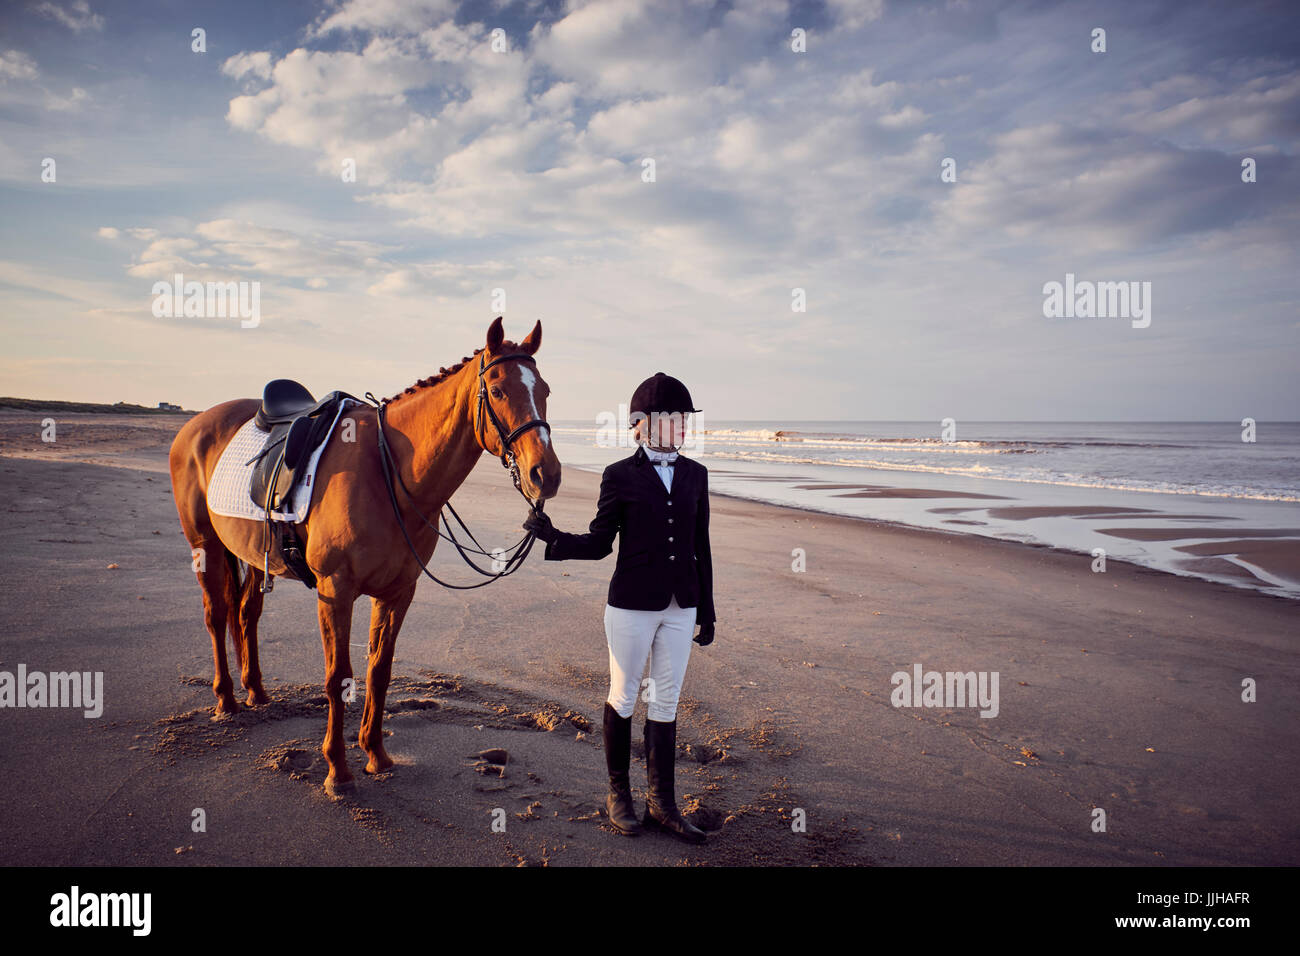 A young woman standing with her horse on the beach. - Stock Image